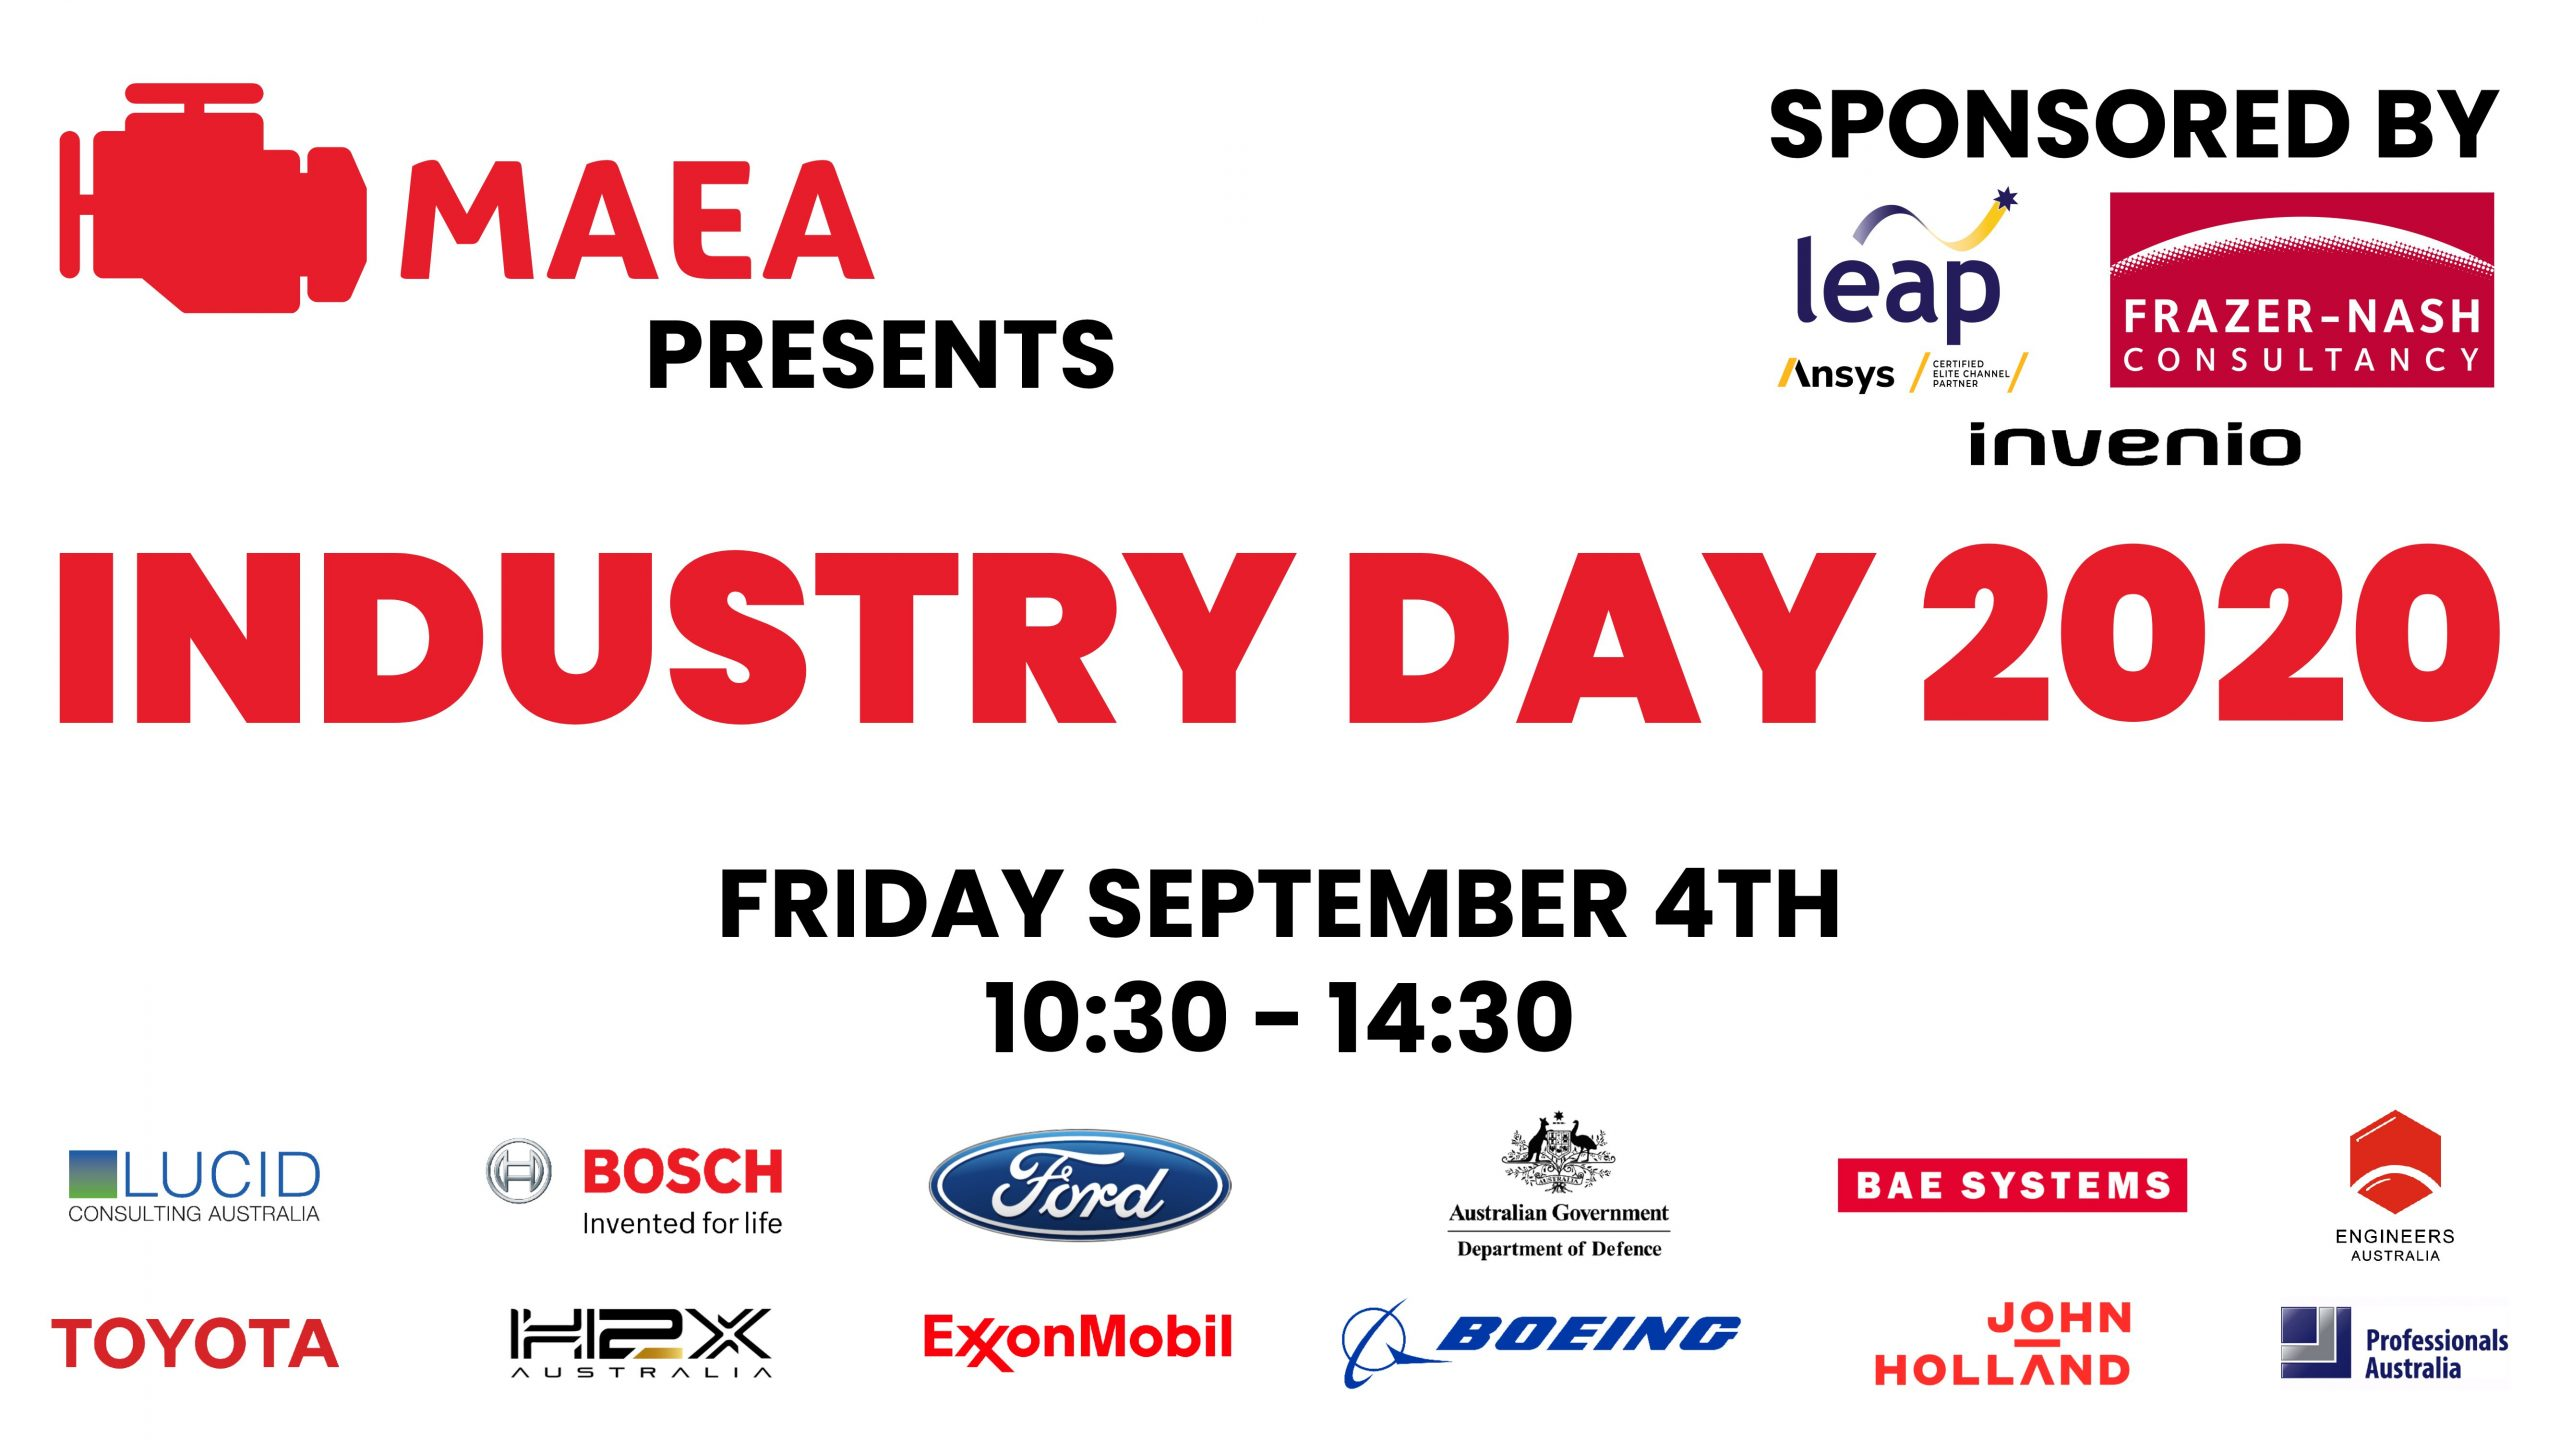 MAEA Industry Day 2020